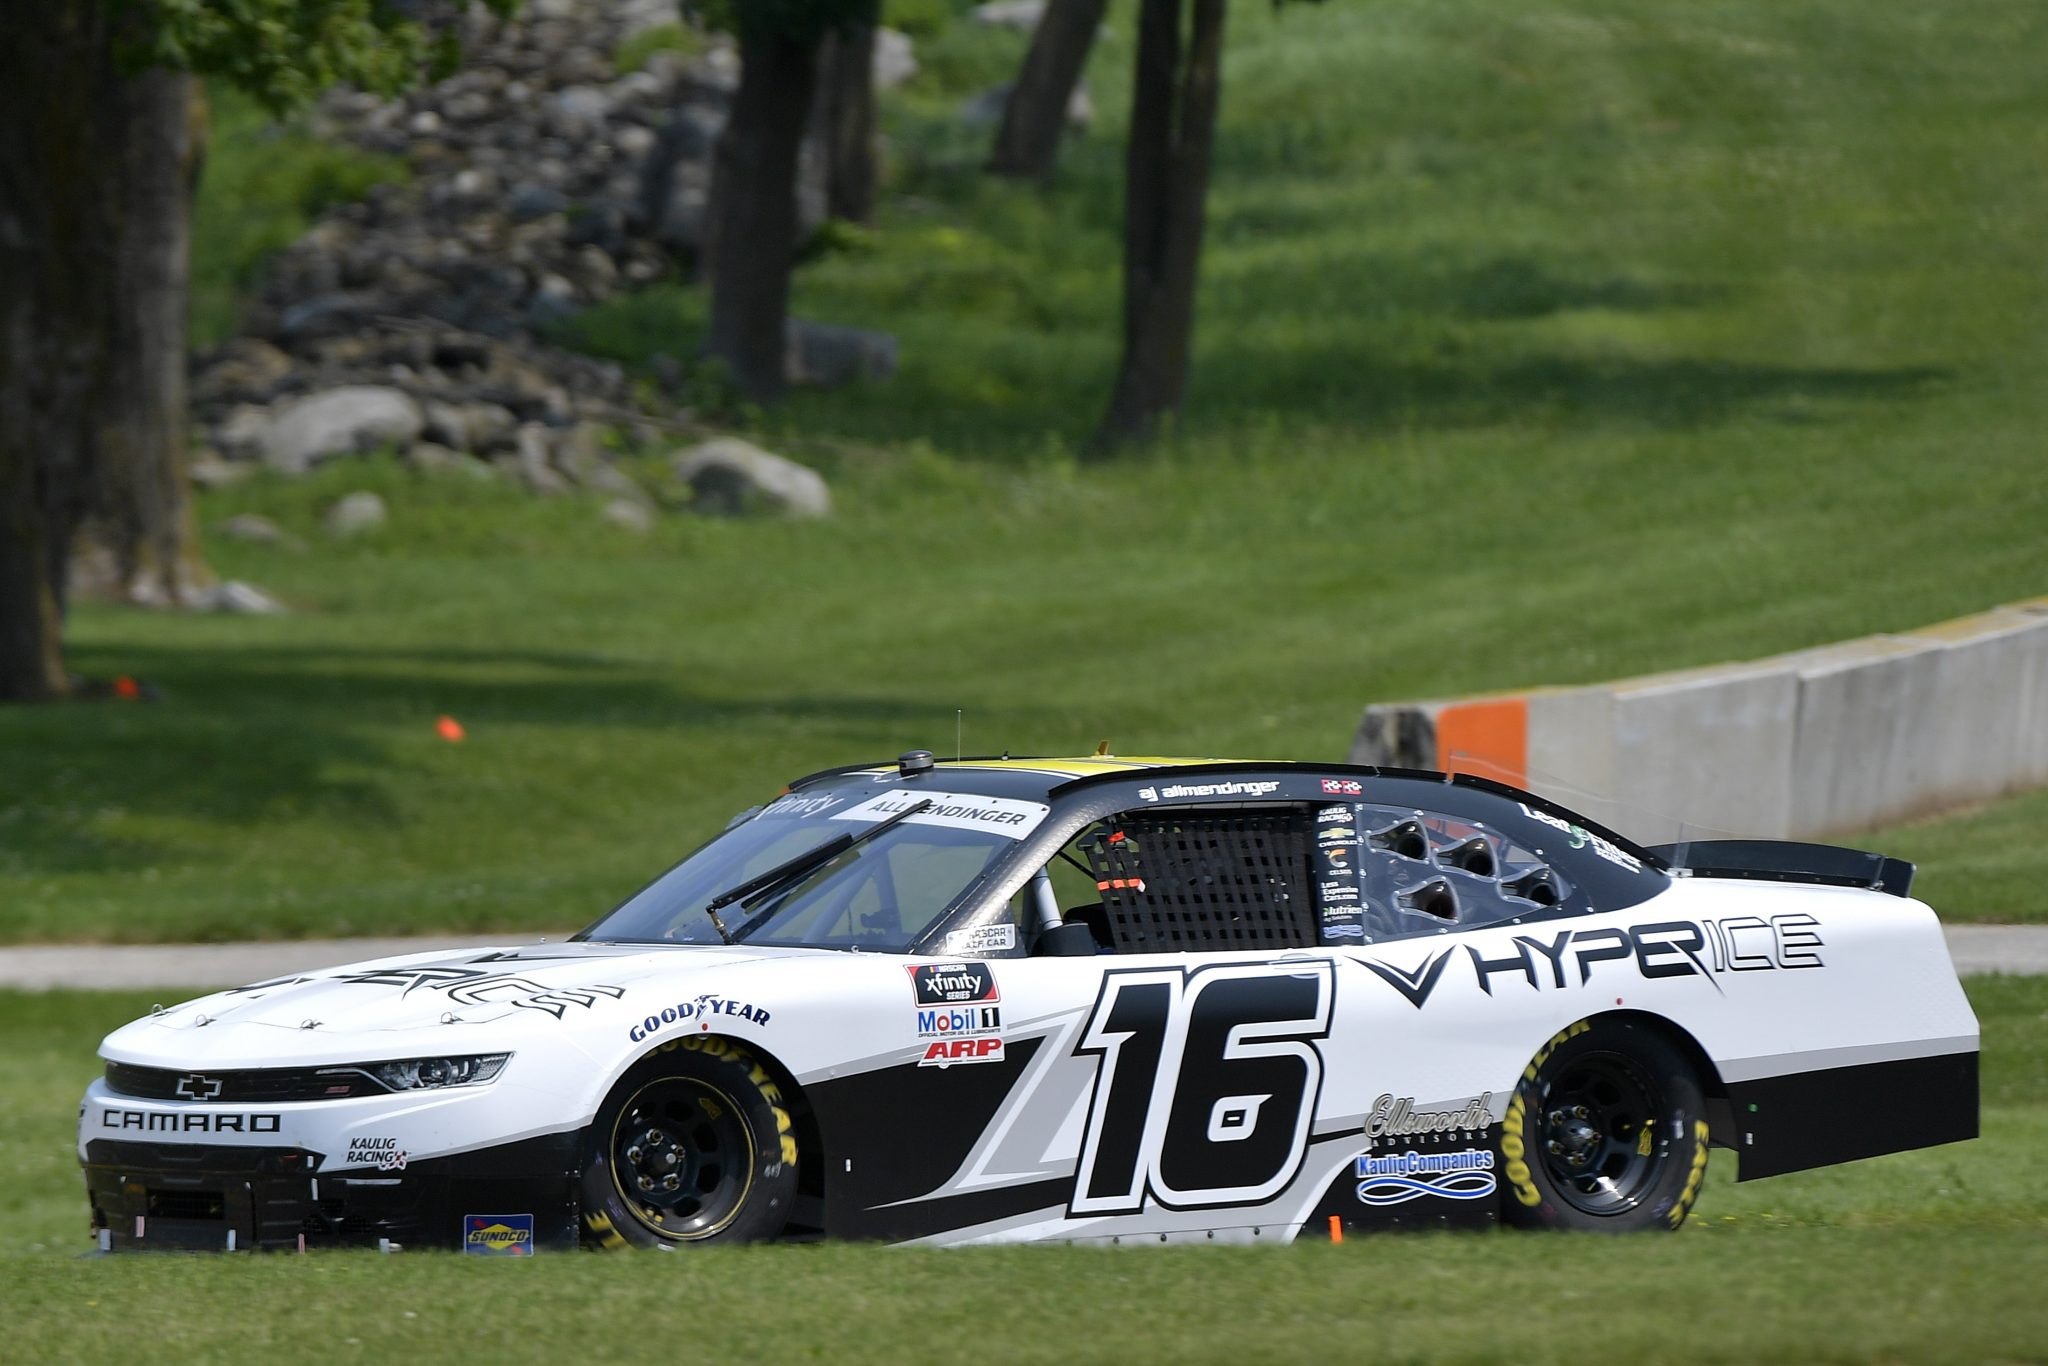 ELKHART LAKE, WISCONSIN - JULY 03: AJ Allmendinger, driver of the #16 Hyperice Chevrolet, drives during the NASCAR Xfinity Series Henry 180 at Road America on July 03, 2021 in Elkhart Lake, Wisconsin. (Photo by Logan Riely/Getty Images) | Getty Images